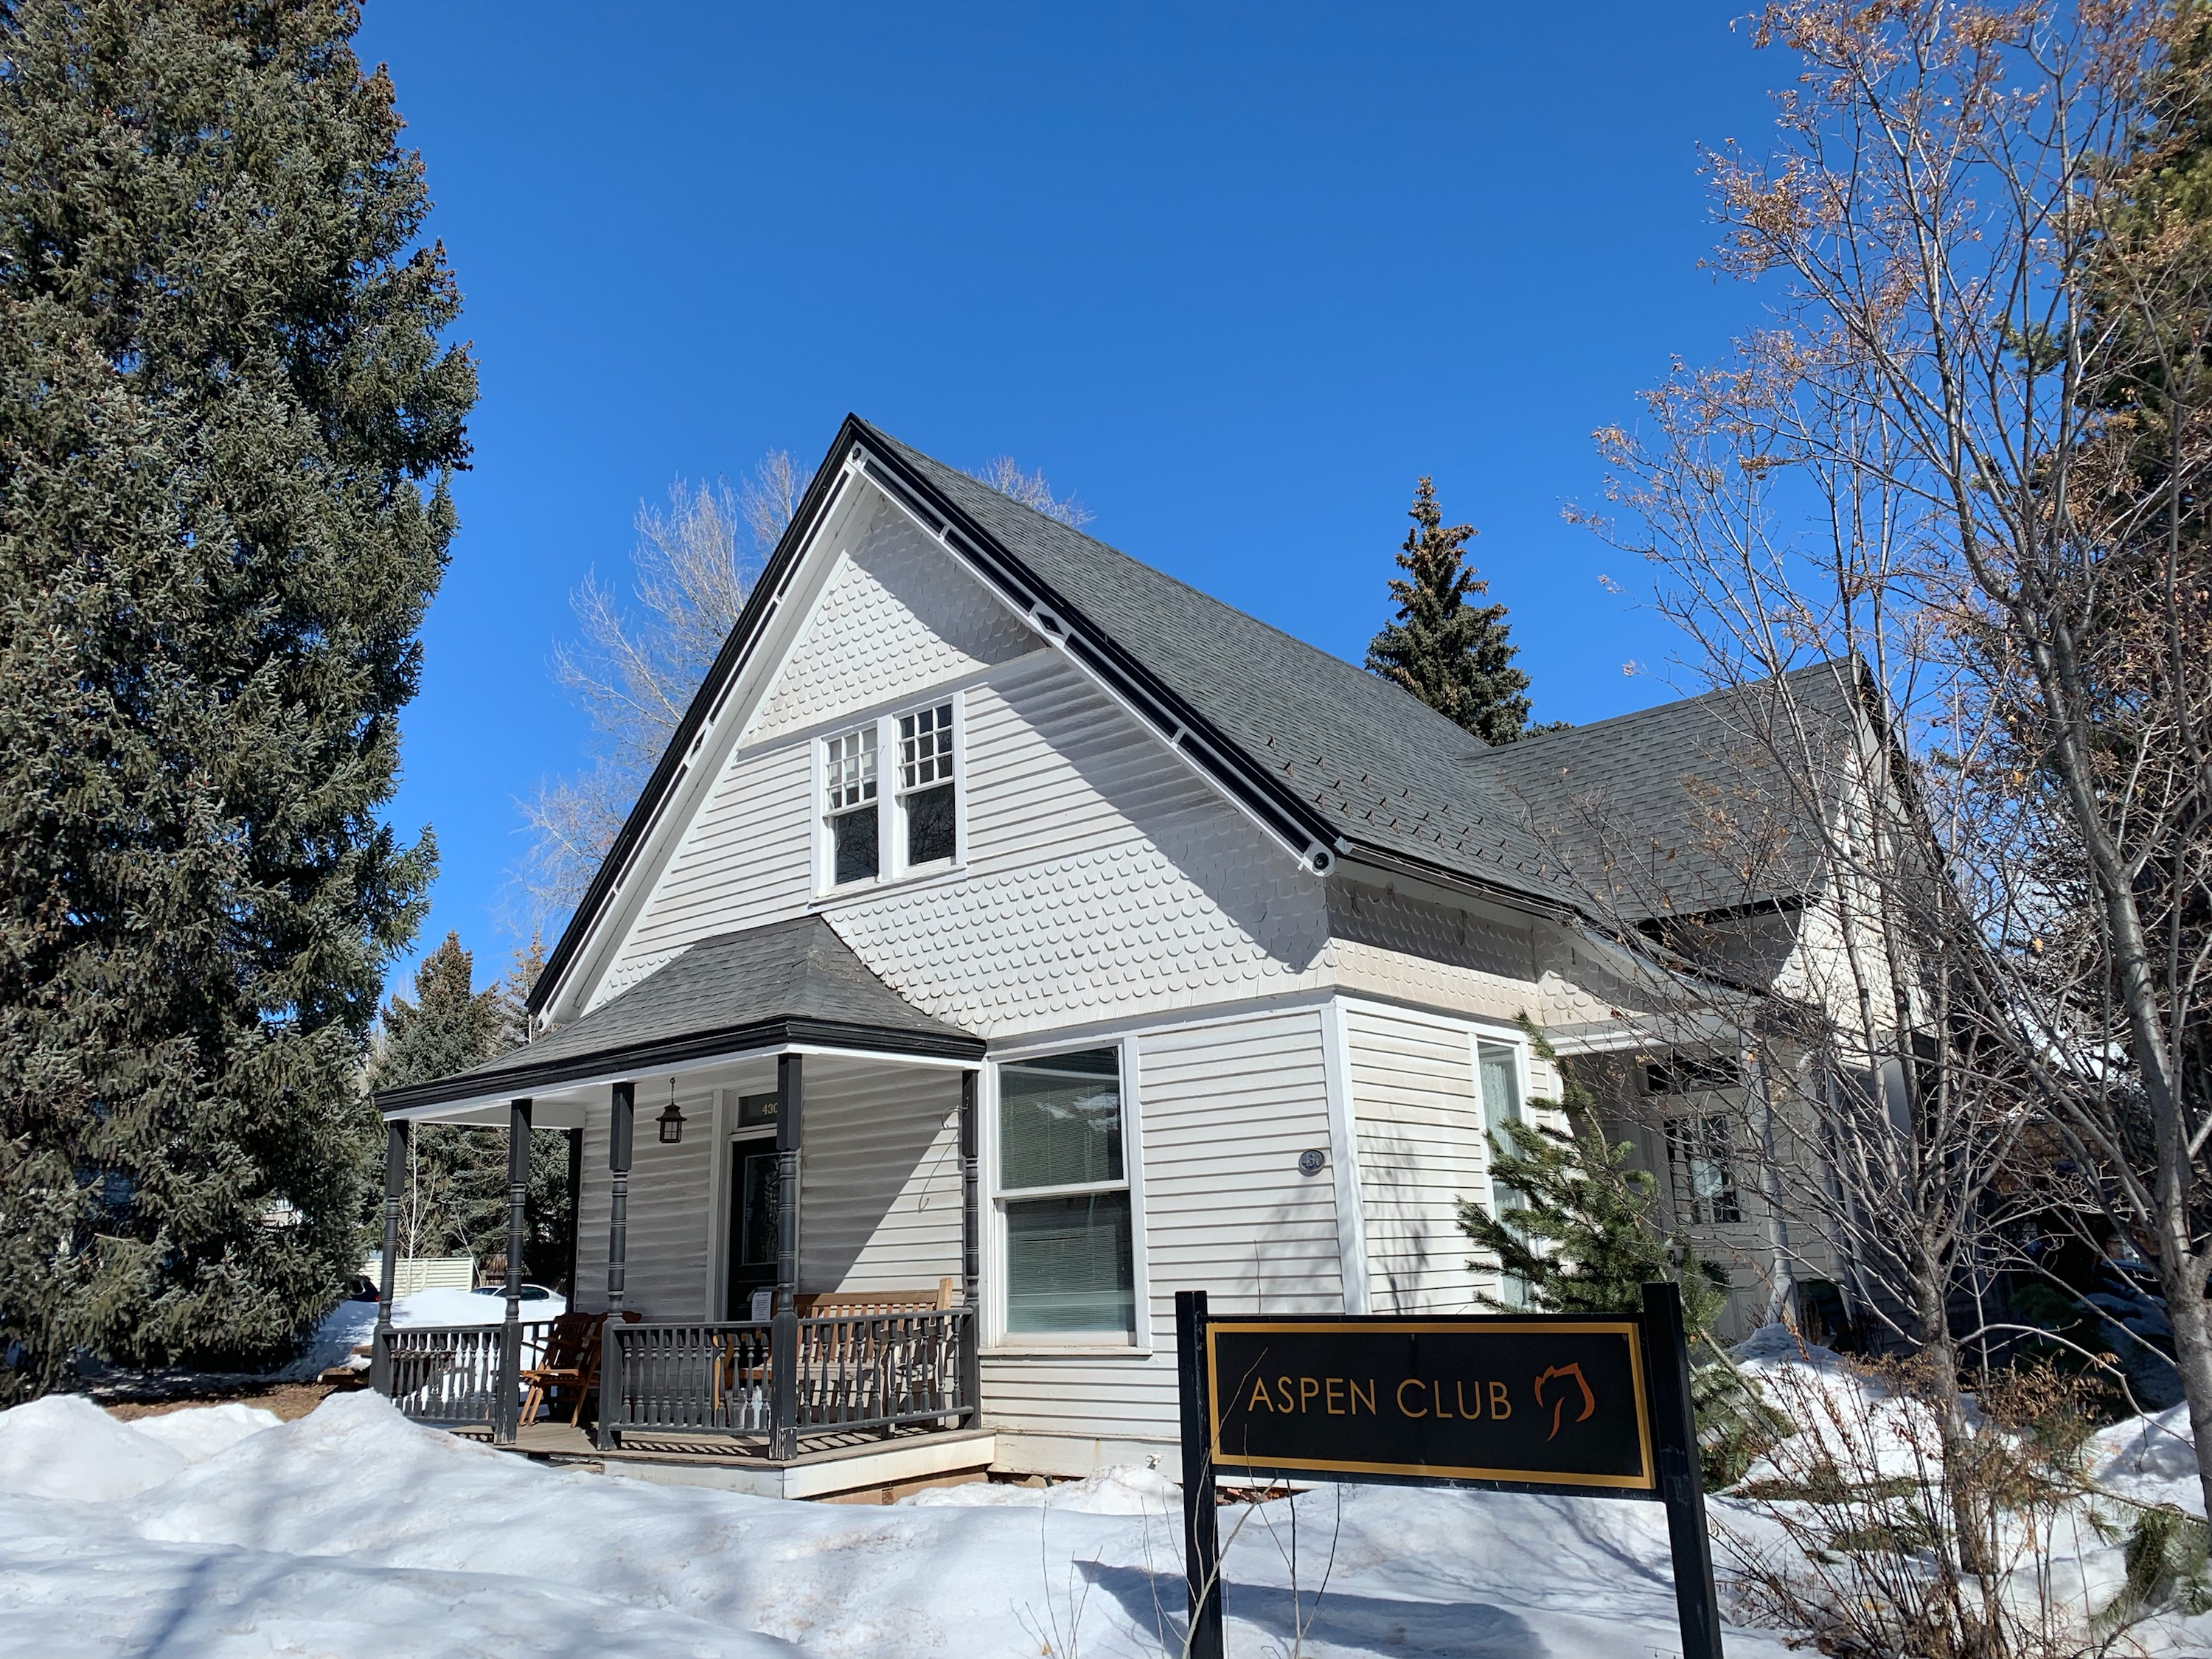 Aspen Club's physical therapy division evicted